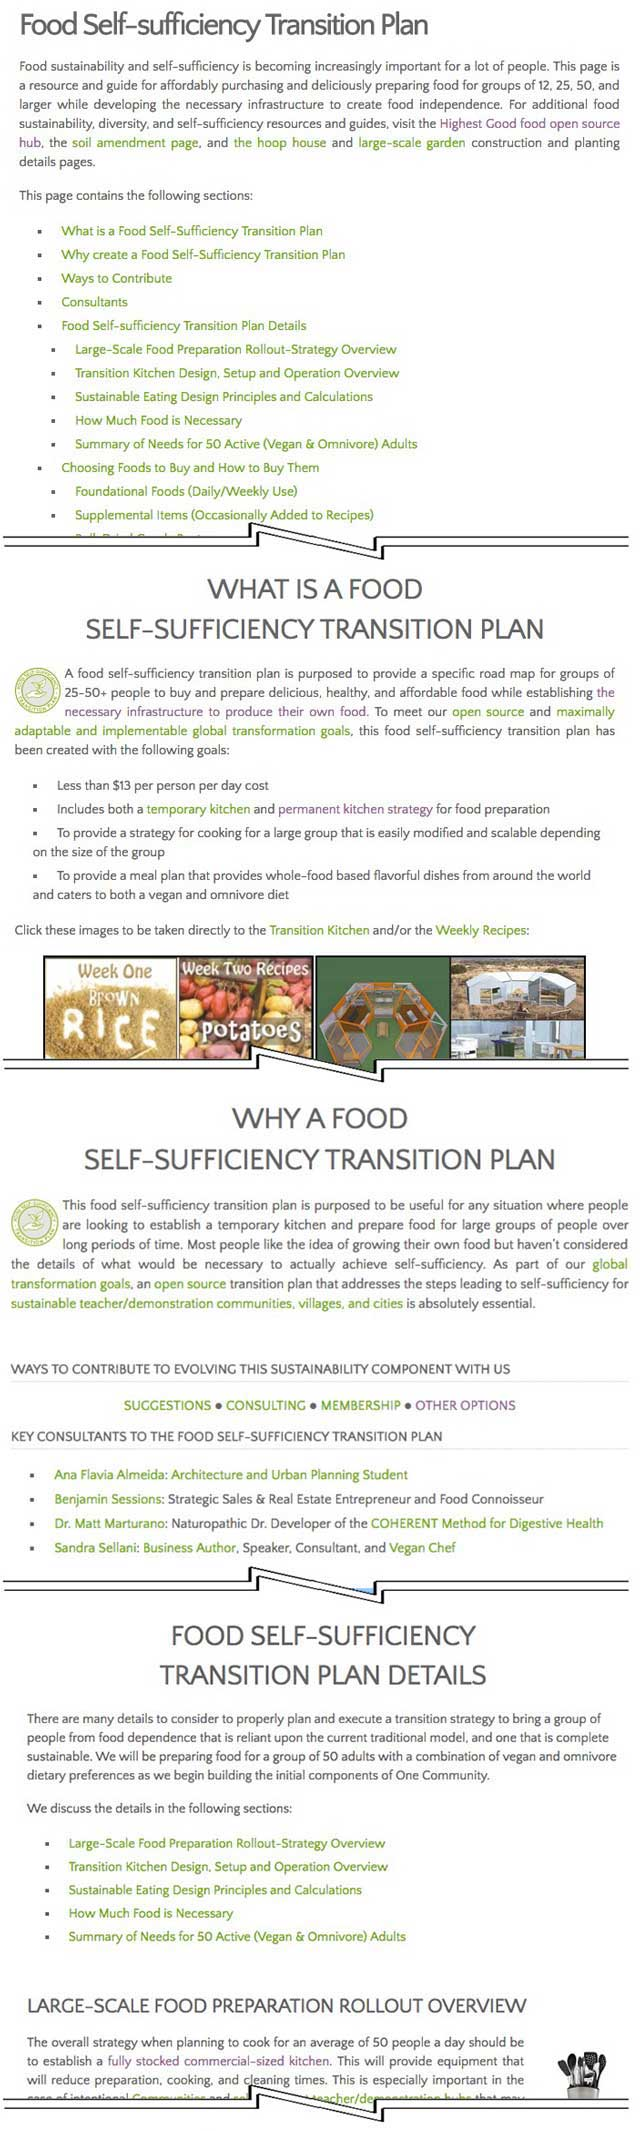 Working with Jennifer Zhou (Web Designer), we also completed edits and reorganization of the Food Self-sufficiency Transition Plan page, bringing that page to 90% completion, which you can see here.